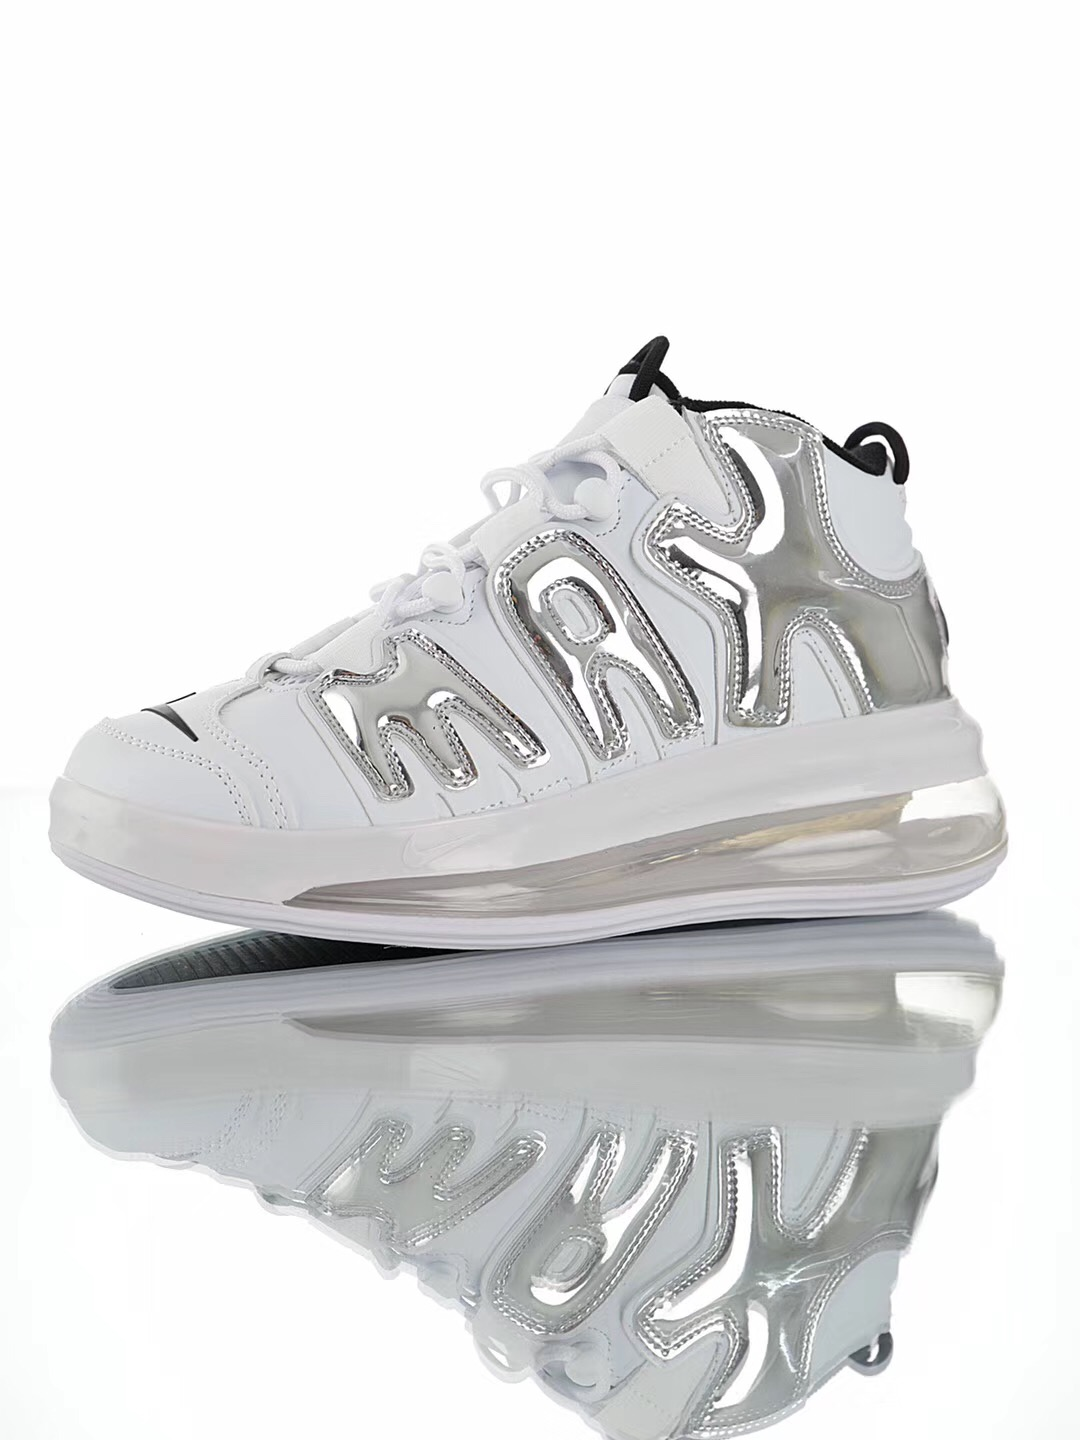 Cheap Real Nike Air More Uptempo 720 QS9 White Silver